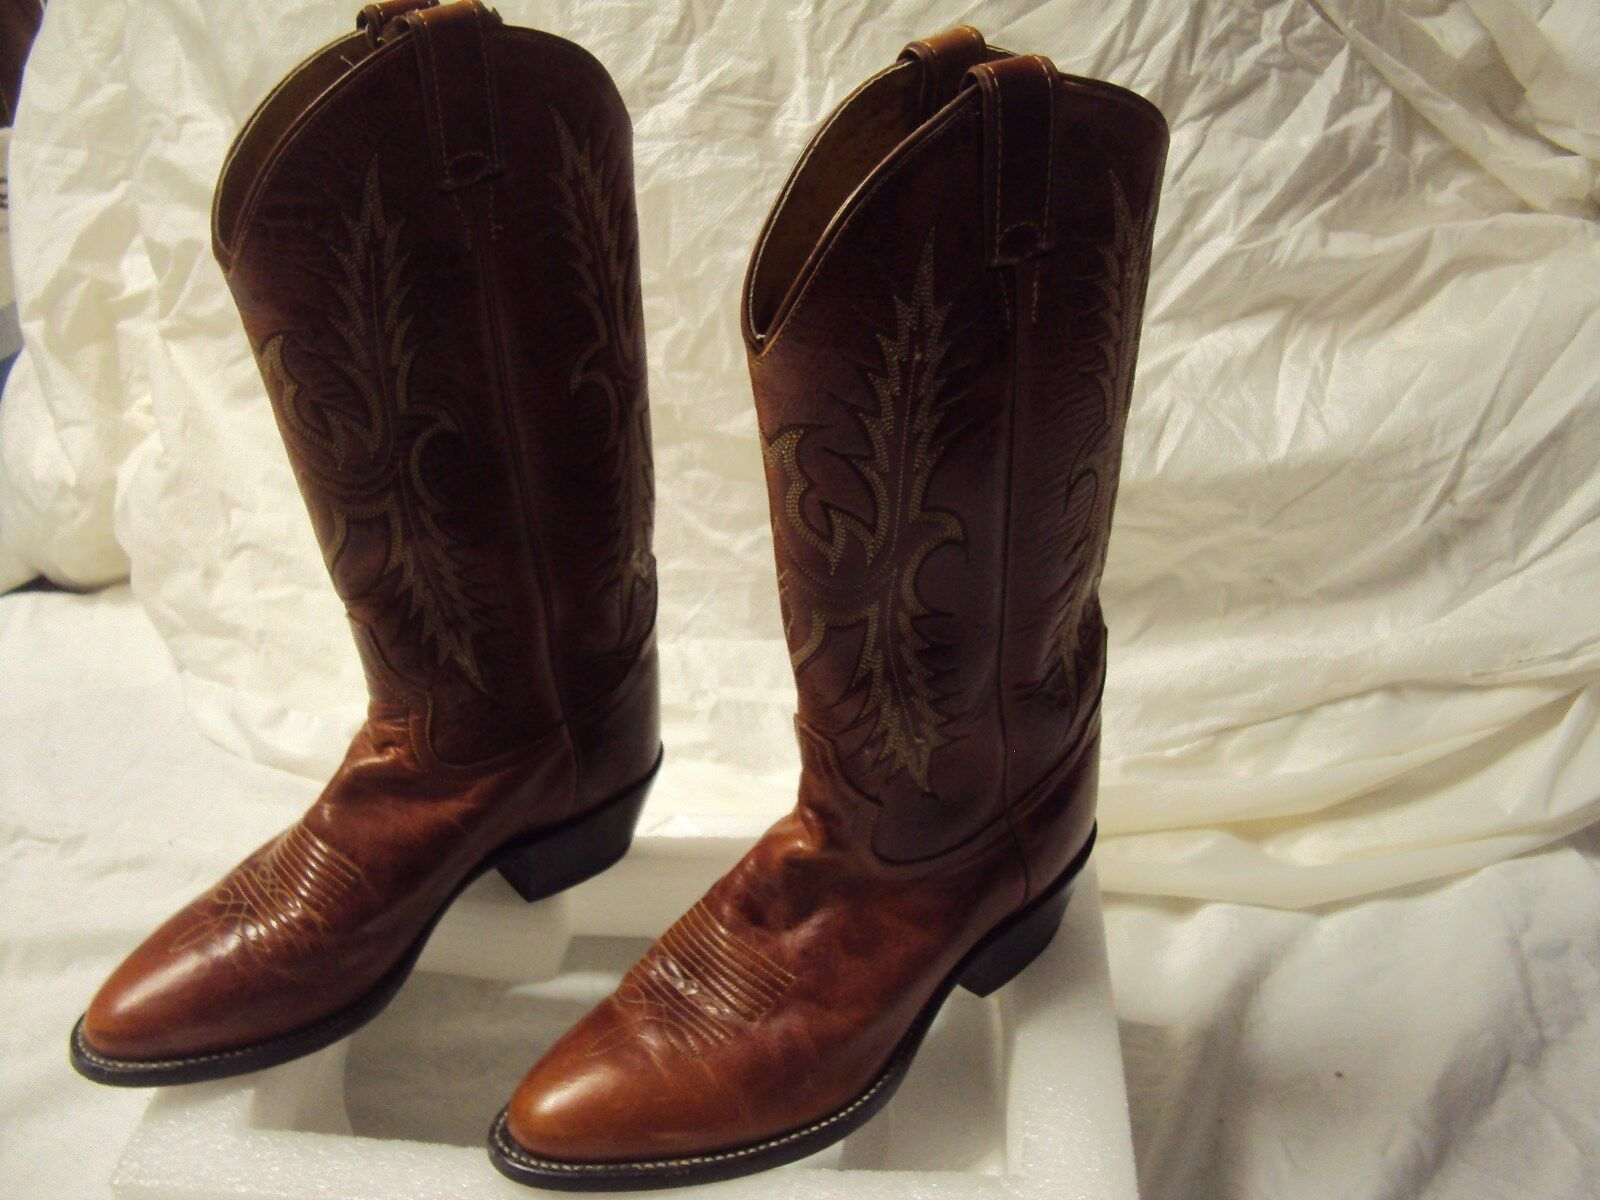 Nine West Cowboy Boots Ladies Stitched Adult Adult Adult Size 6.5 M Width Pre-owned 6b0337